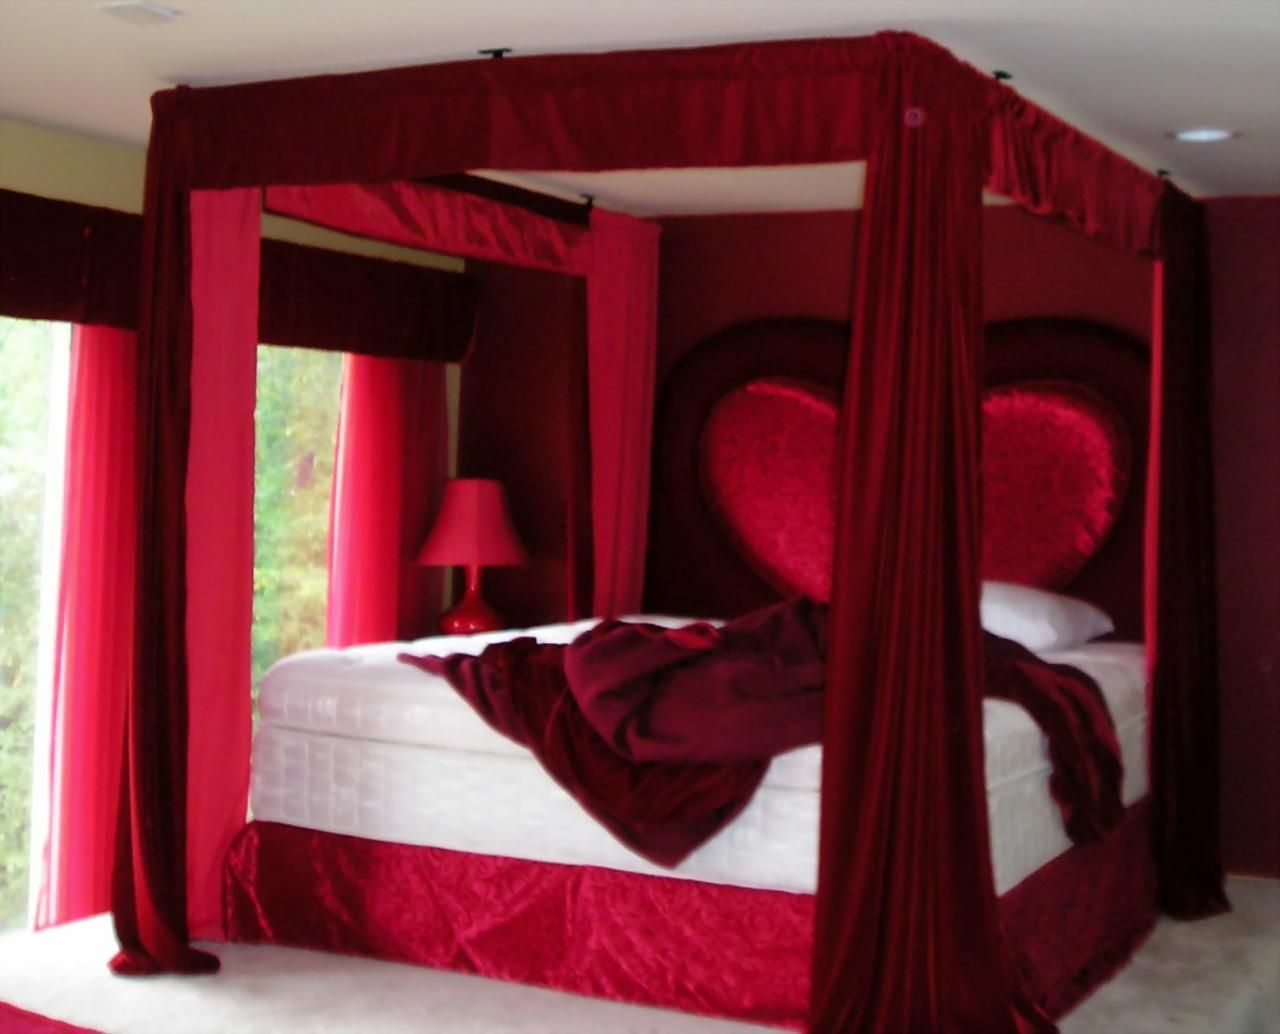 red bedrooms   Short Tree Upholstery and Design, LLC - Gallery ...